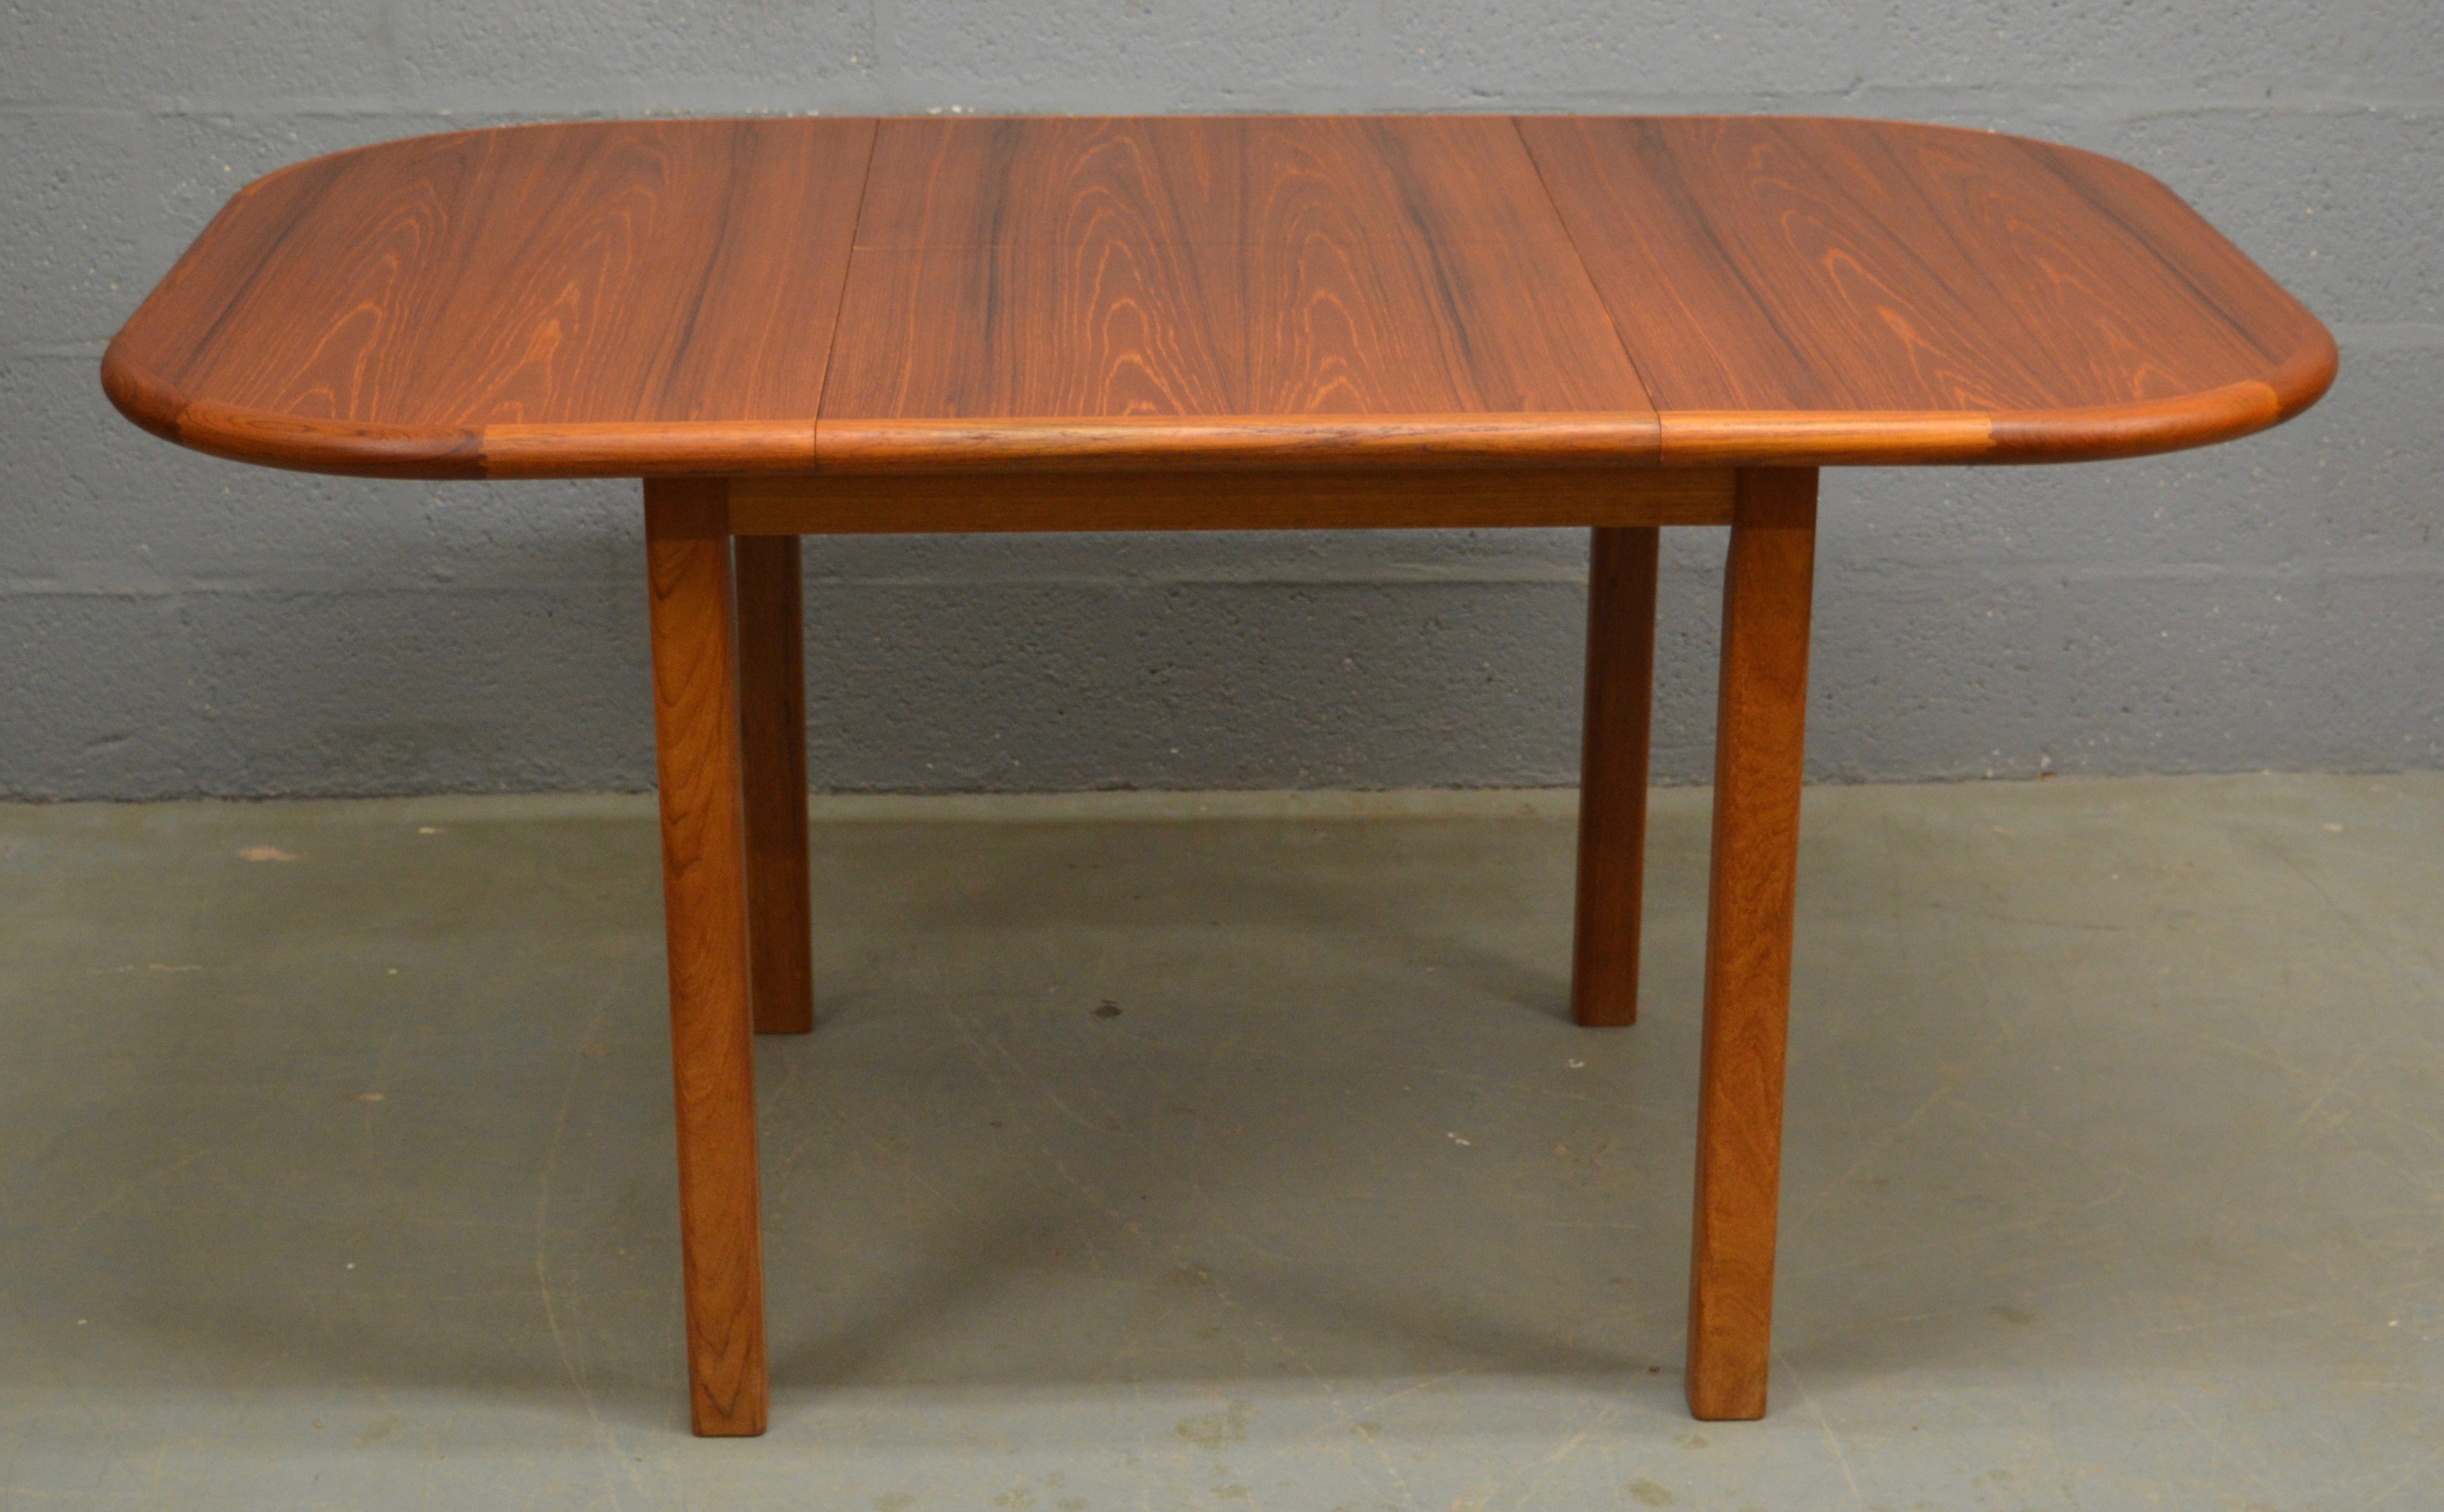 Vintage Teak Danish Table And 4 Chairs By D Scan 1970s